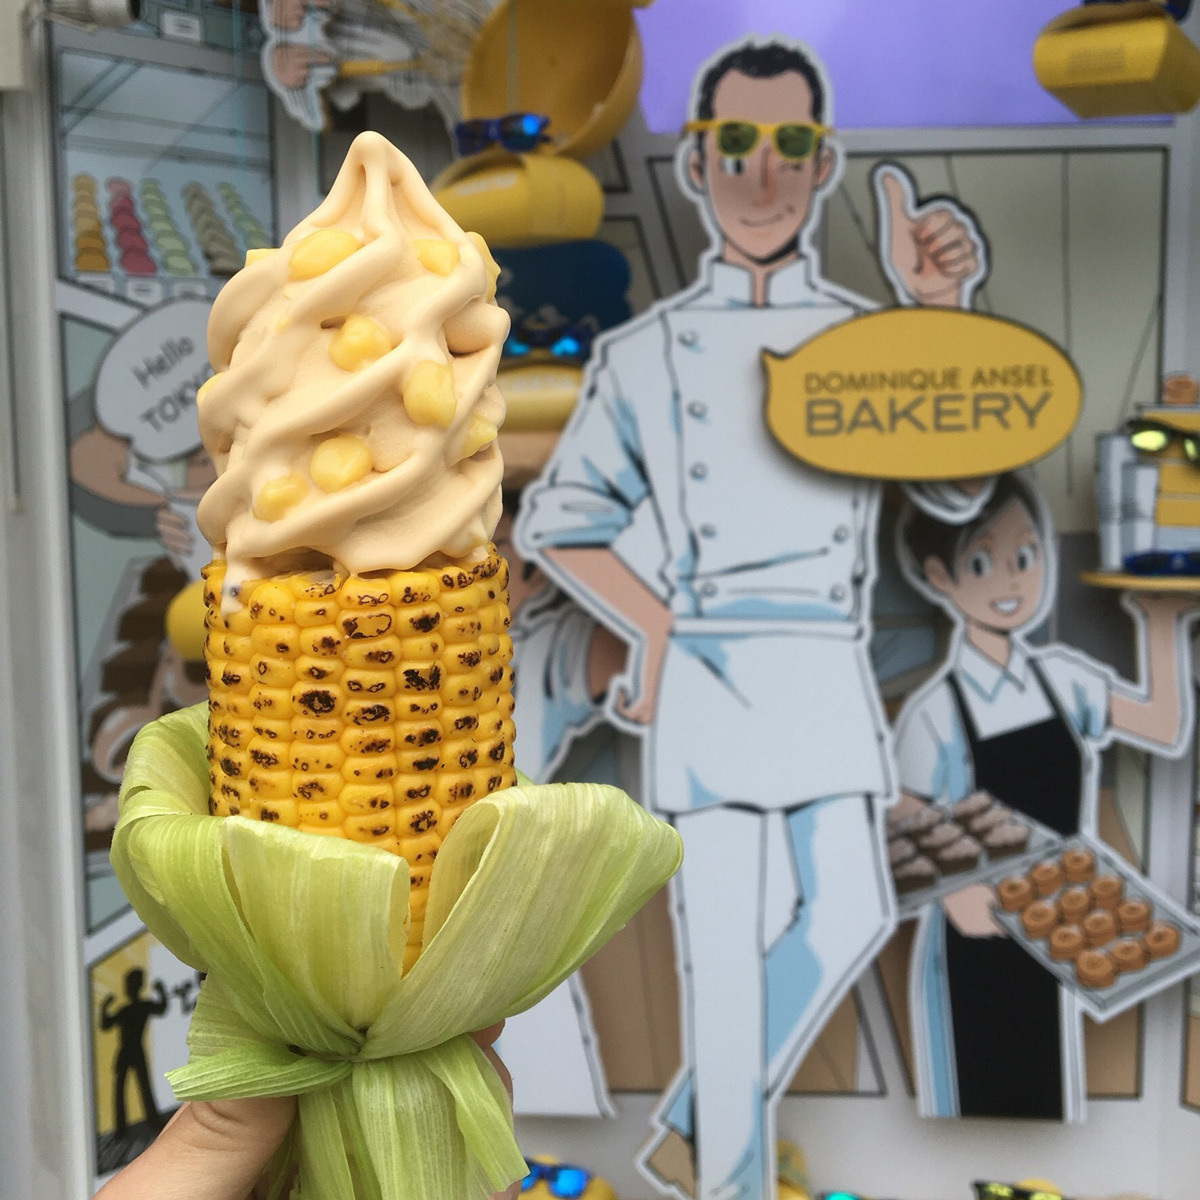 Corn Ice Cream on a Grilled Corn Cob Is Dominique Ansel's Newest Dessert